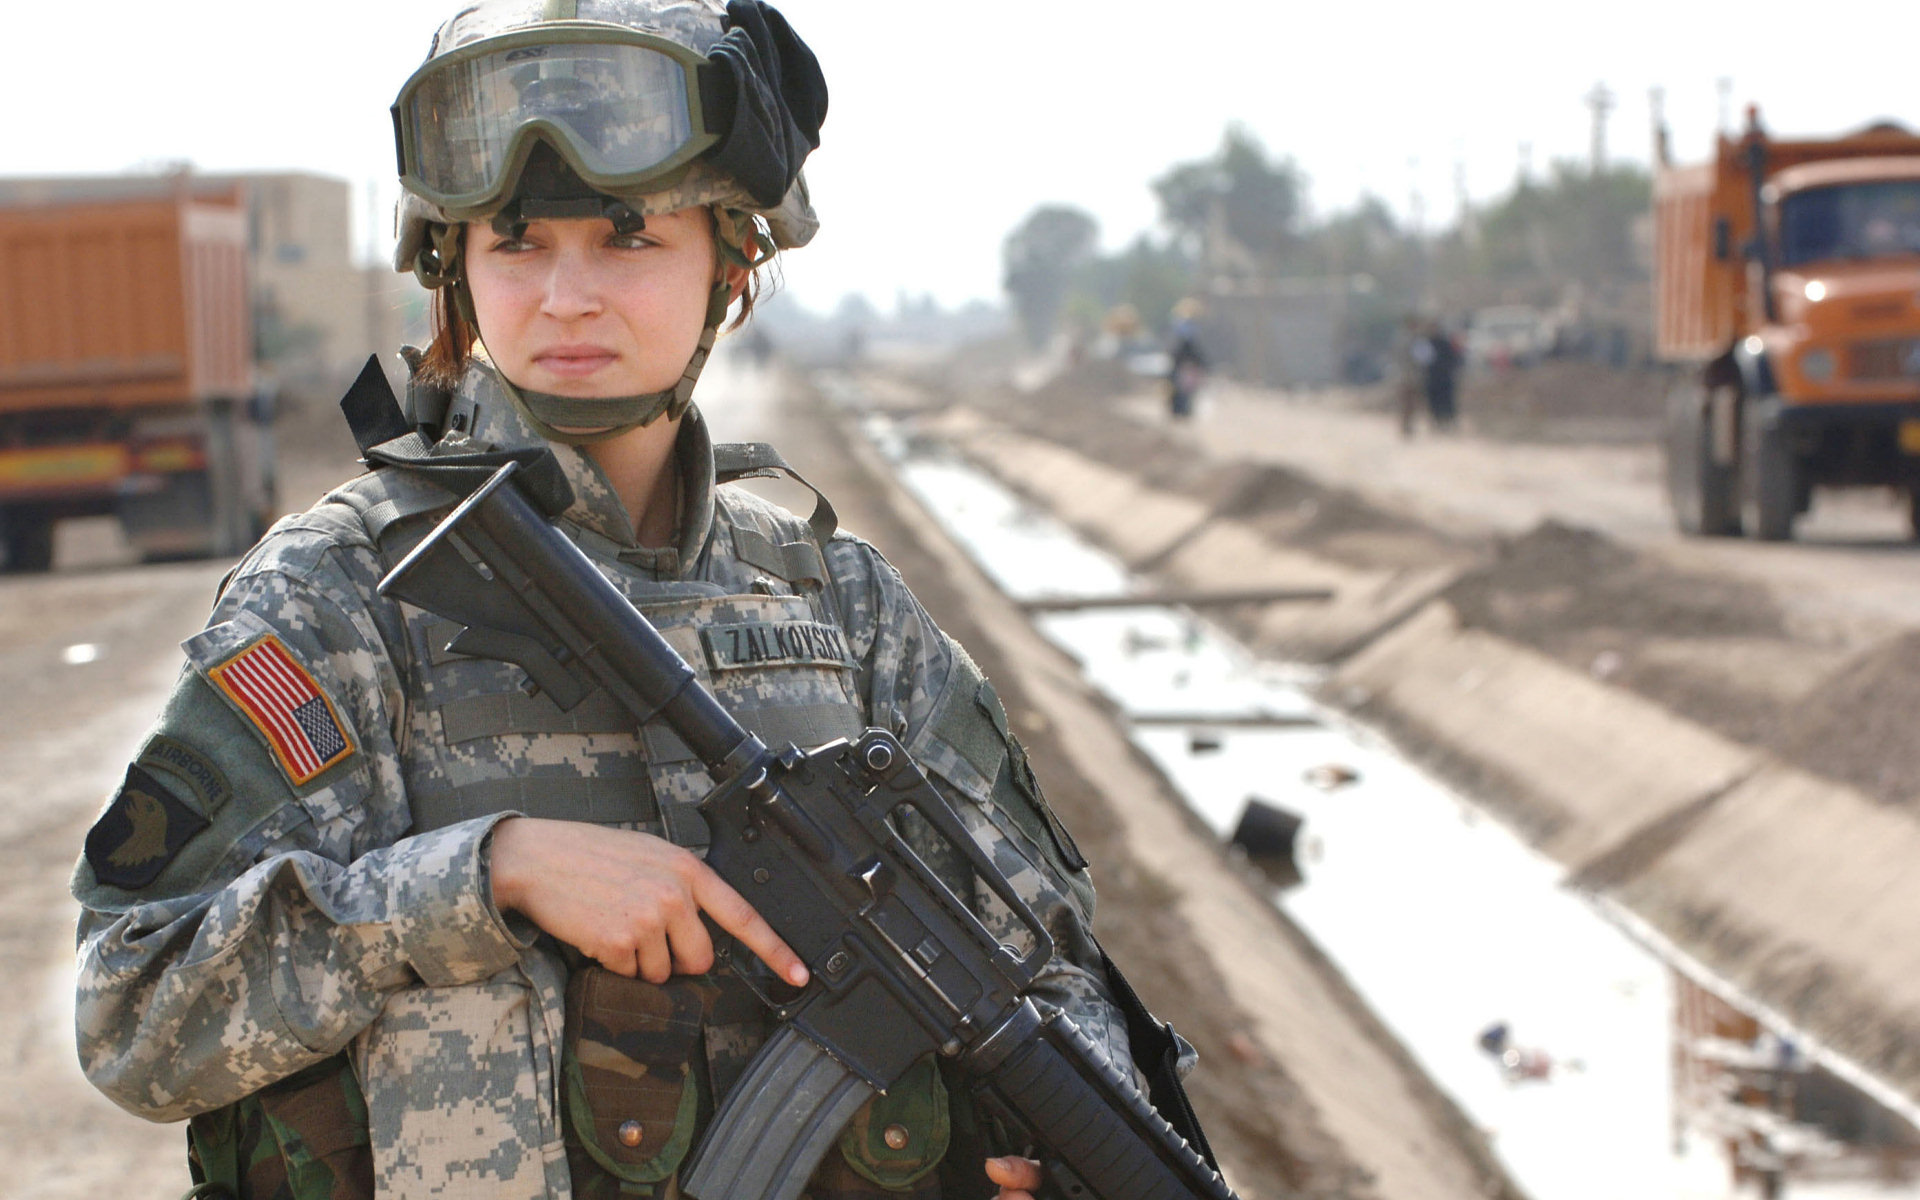 Girls In The Army Computer Wallpapers, Desktop Backgrounds | 1920x1200 ...